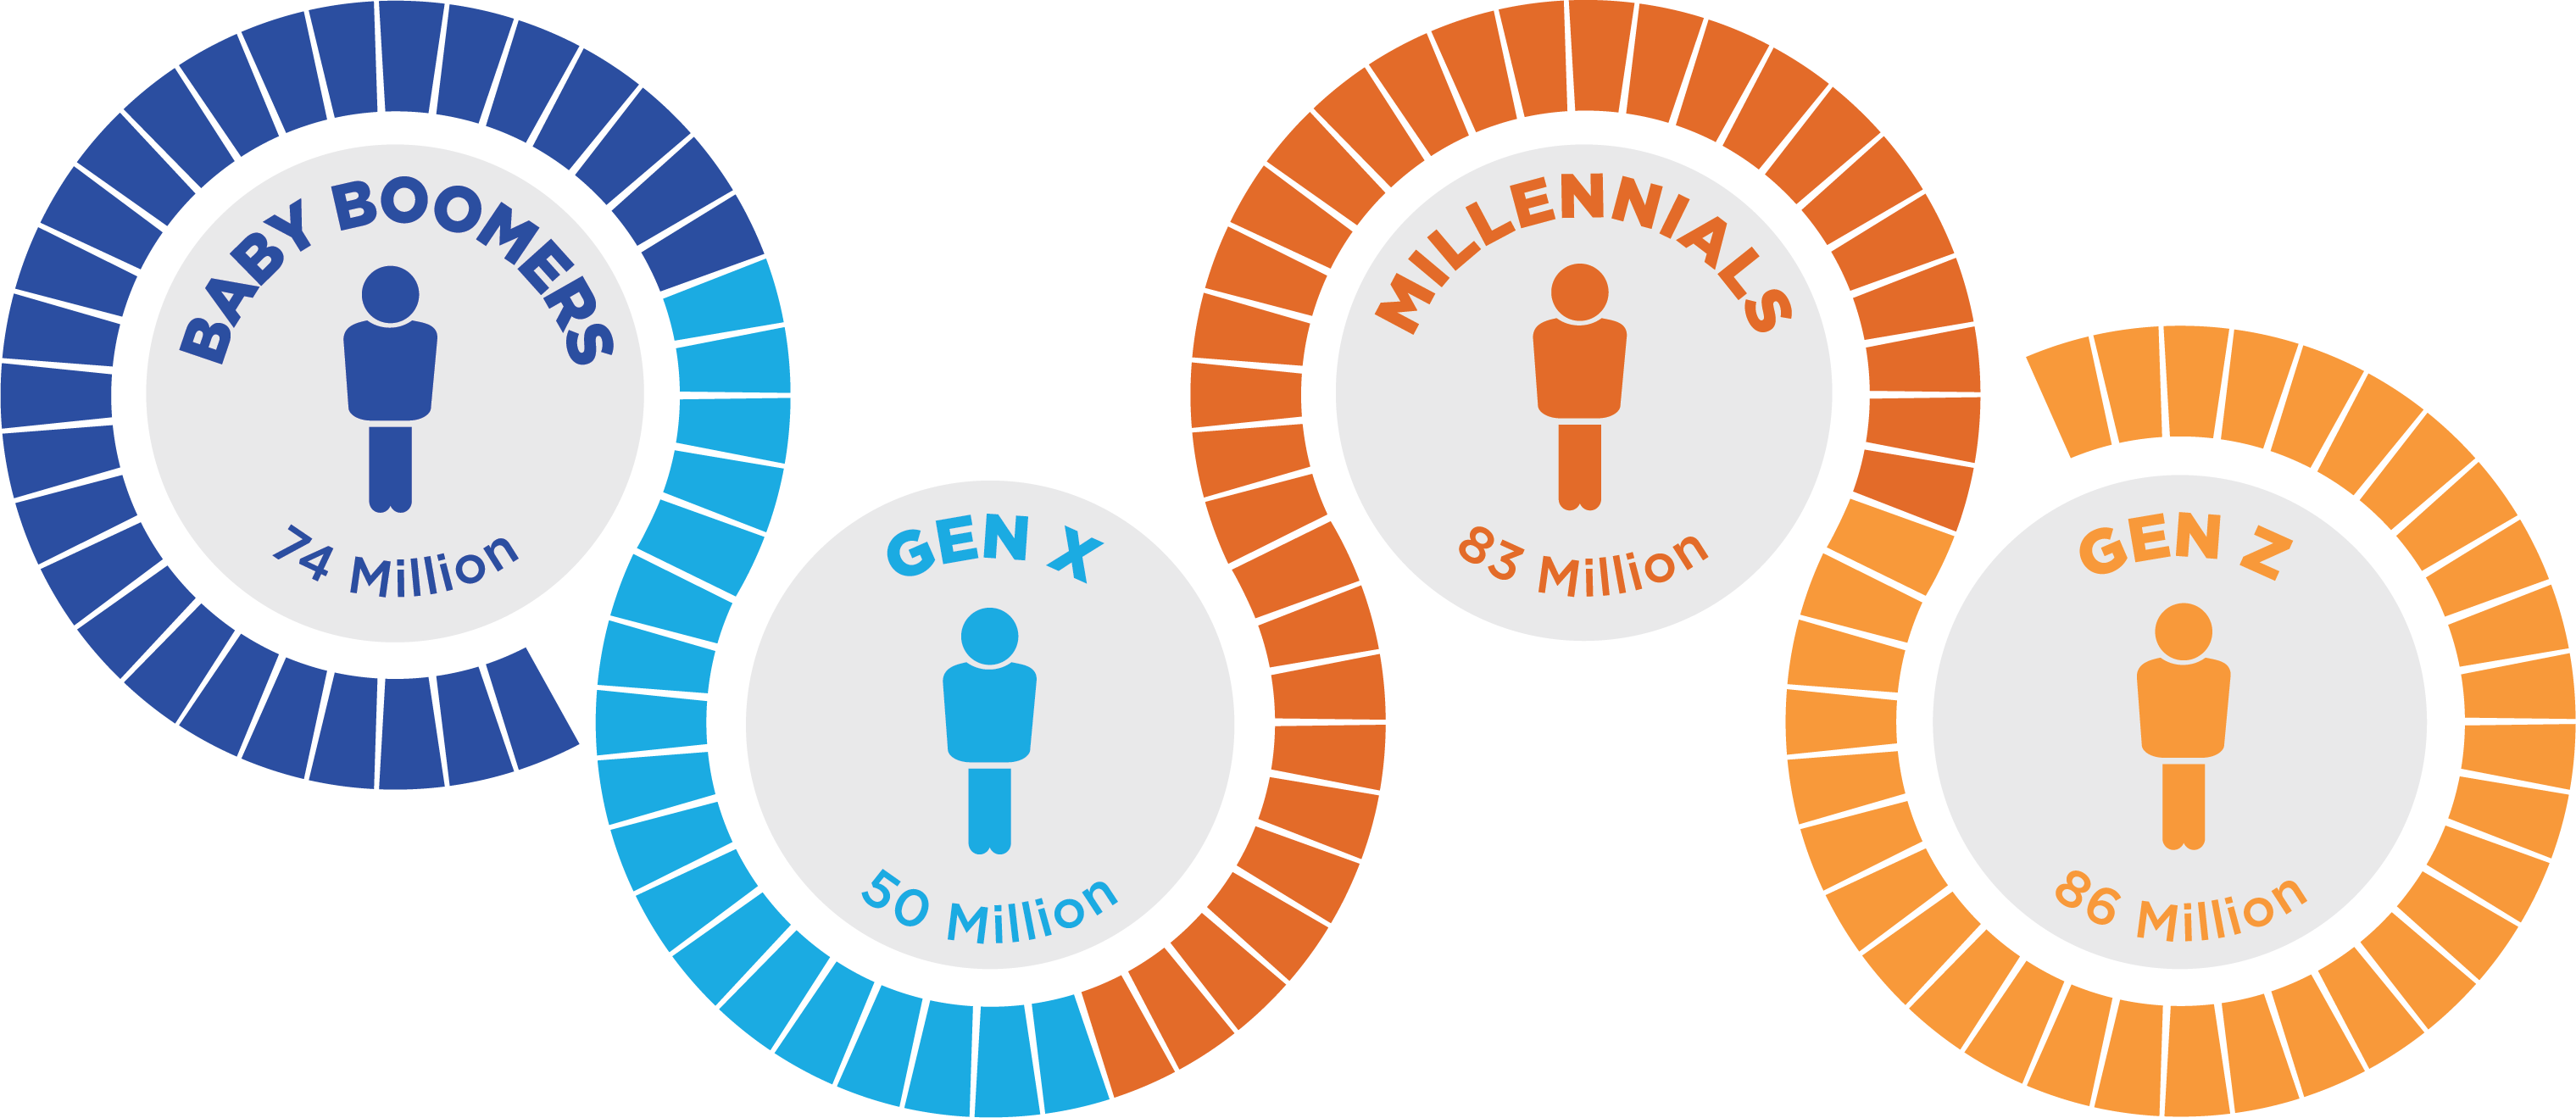 Generations Png - Generations Birth Years - Gen Z, Millennials, Gen X, and Baby Boomers